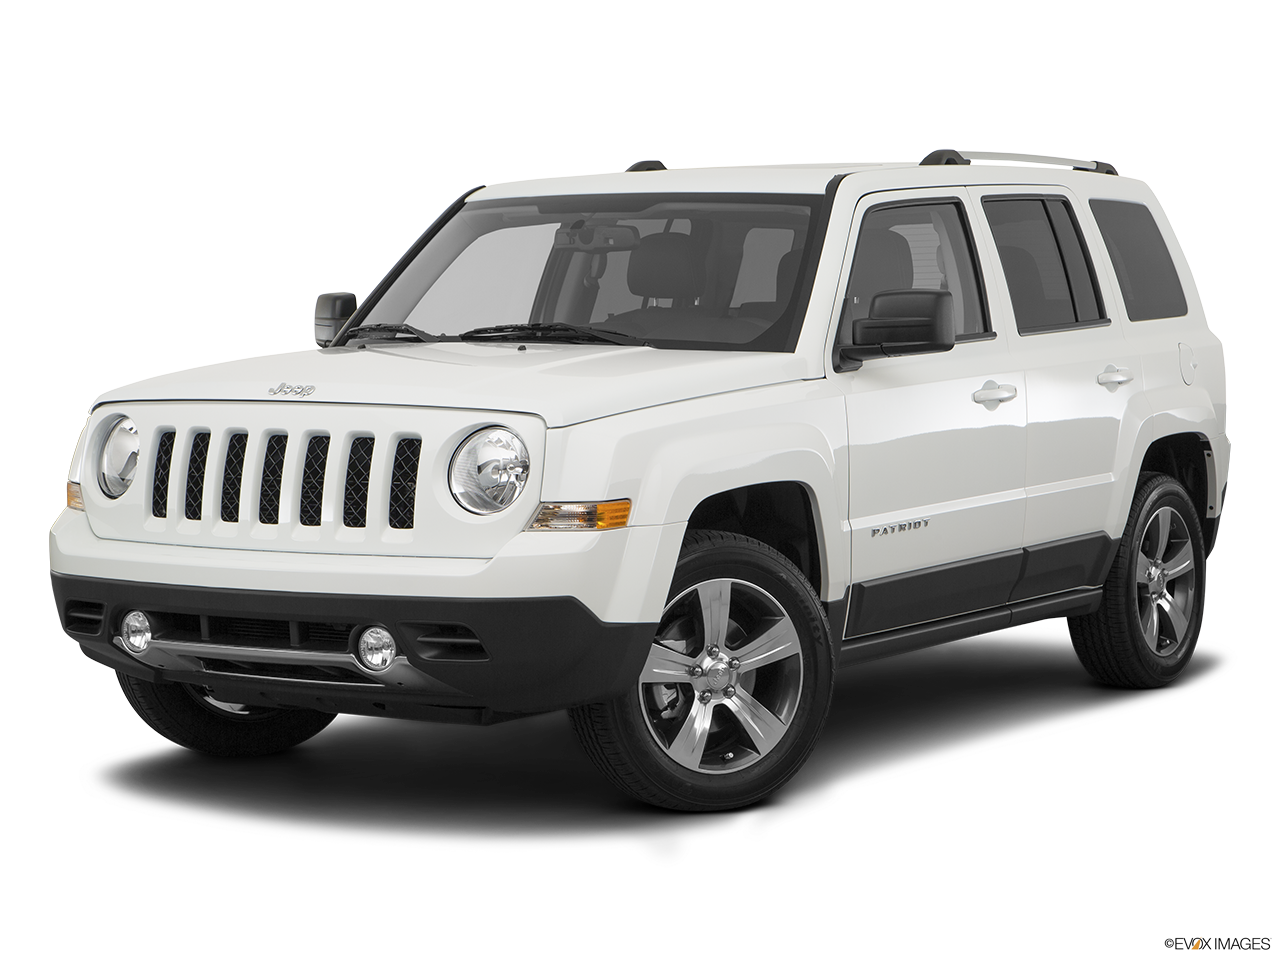 Test Drive A 2017 Jeep Patriot at Carl Burger Dodge Chrysler Jeep Ram World in La Mesa